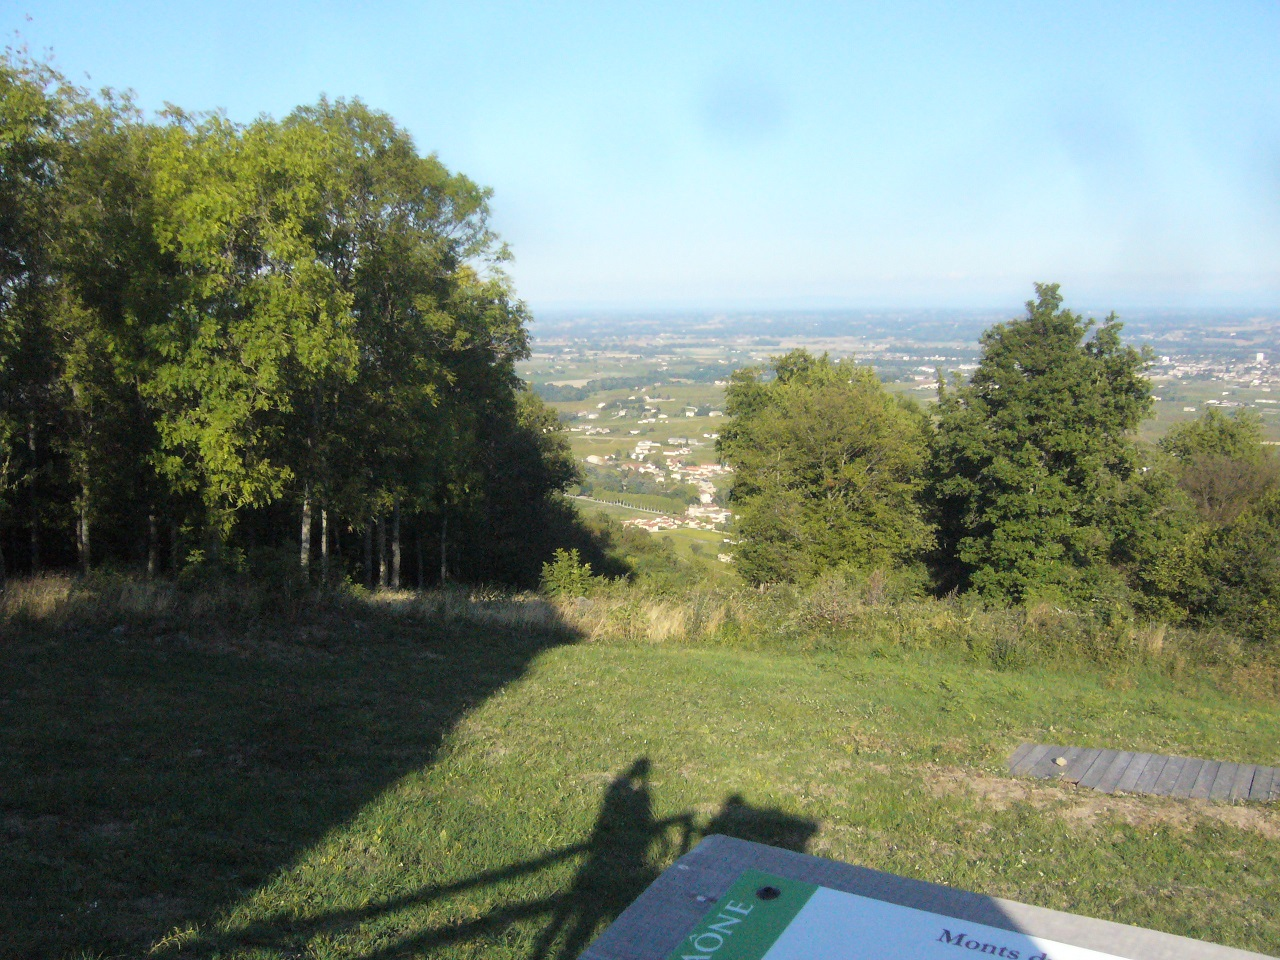 mont brouilly 2.jpg